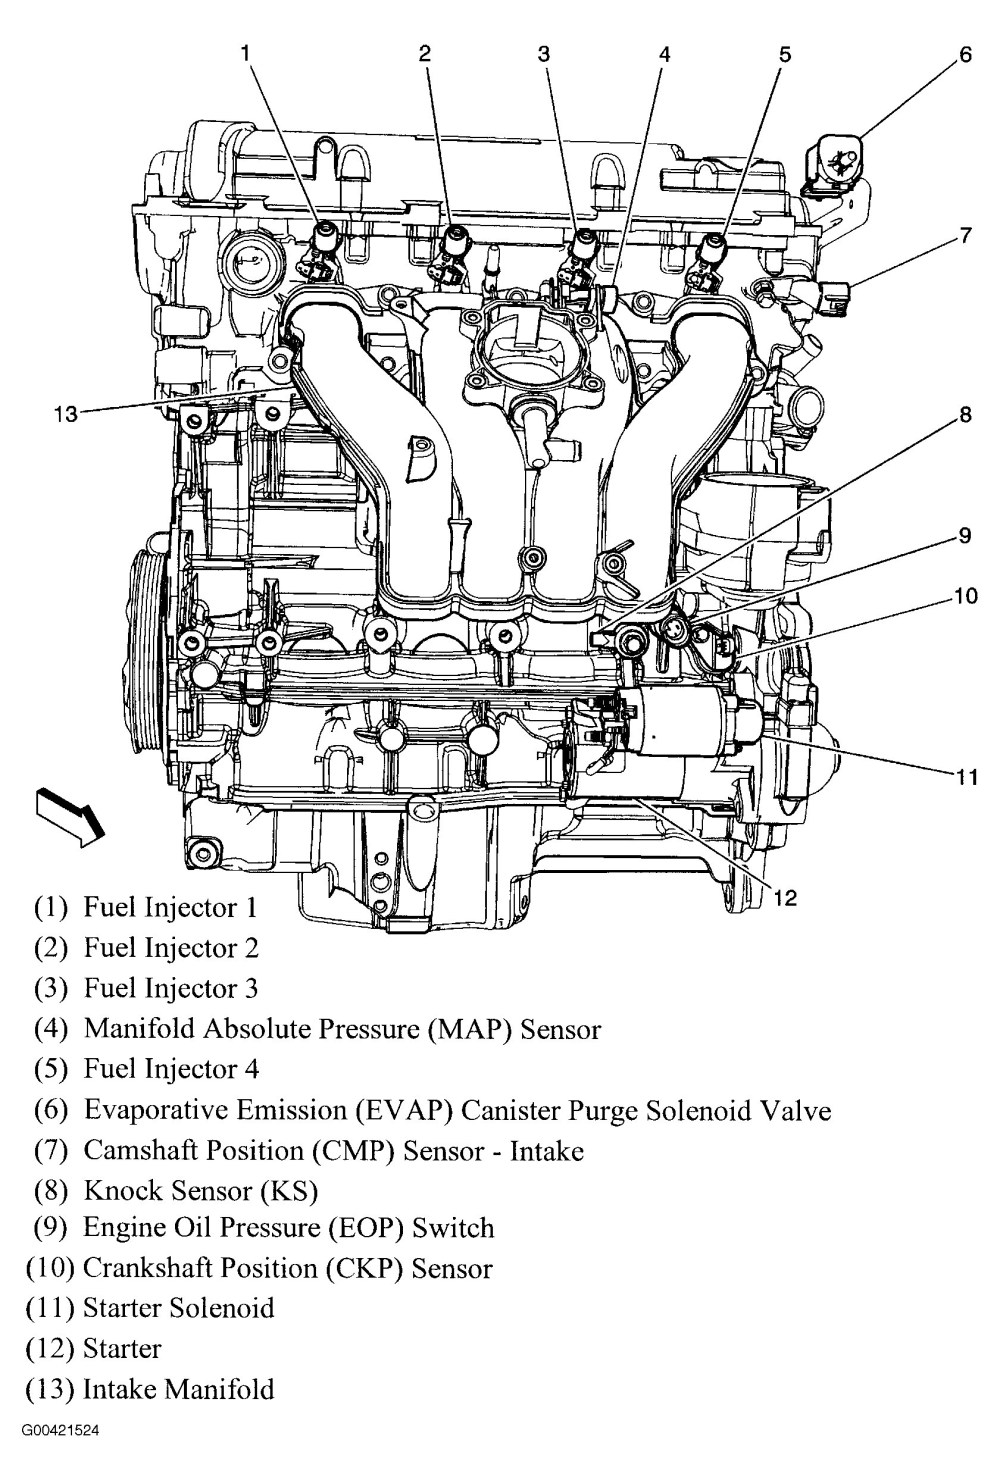 medium resolution of 1999 pontiac montana engine diagram wiring diagram fascinating 2001 pontiac montana engine diagrams http wwwjustanswercom pontiac